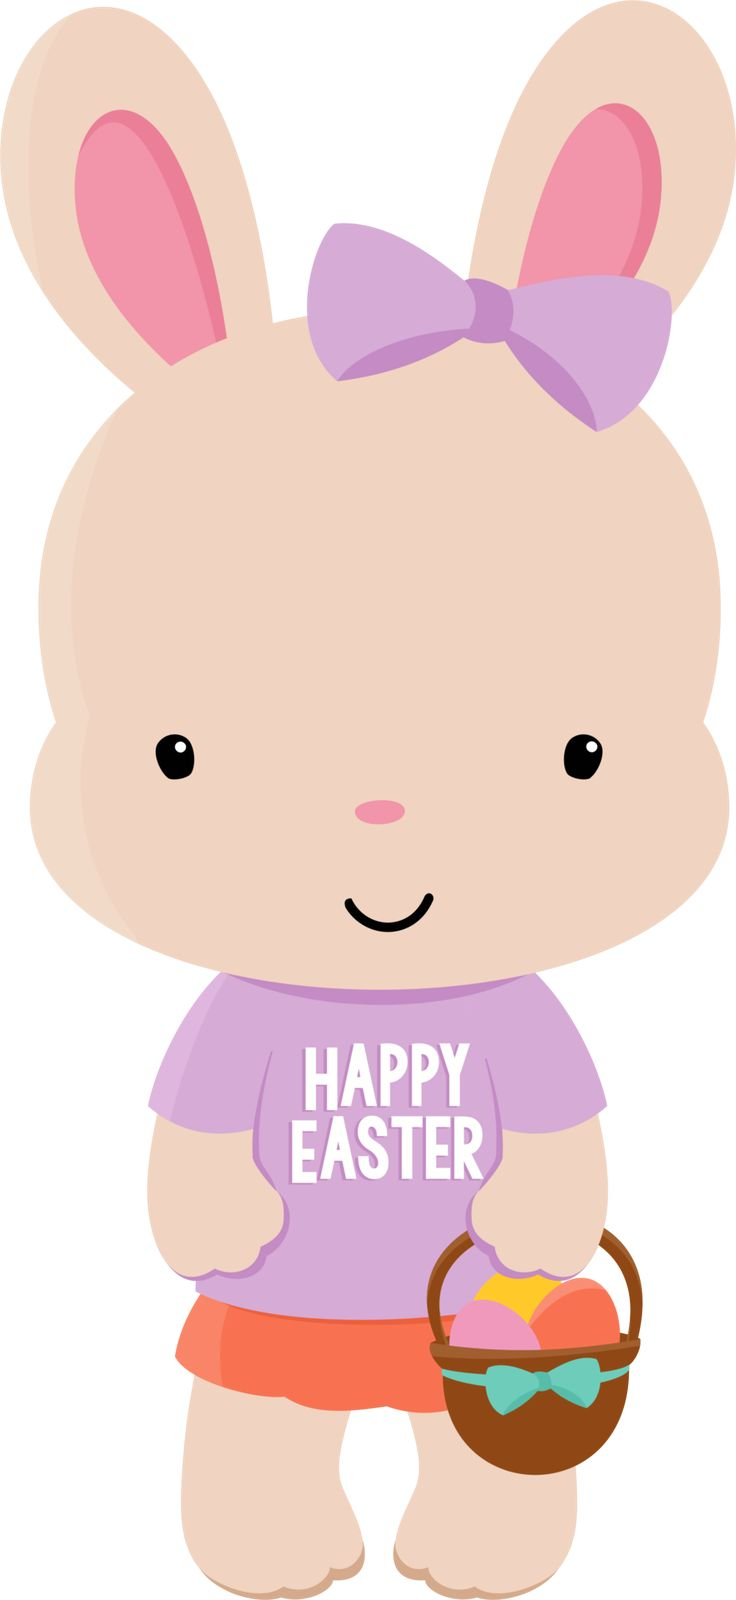 Emo clipart happy easter Clipart 506 best Images Images